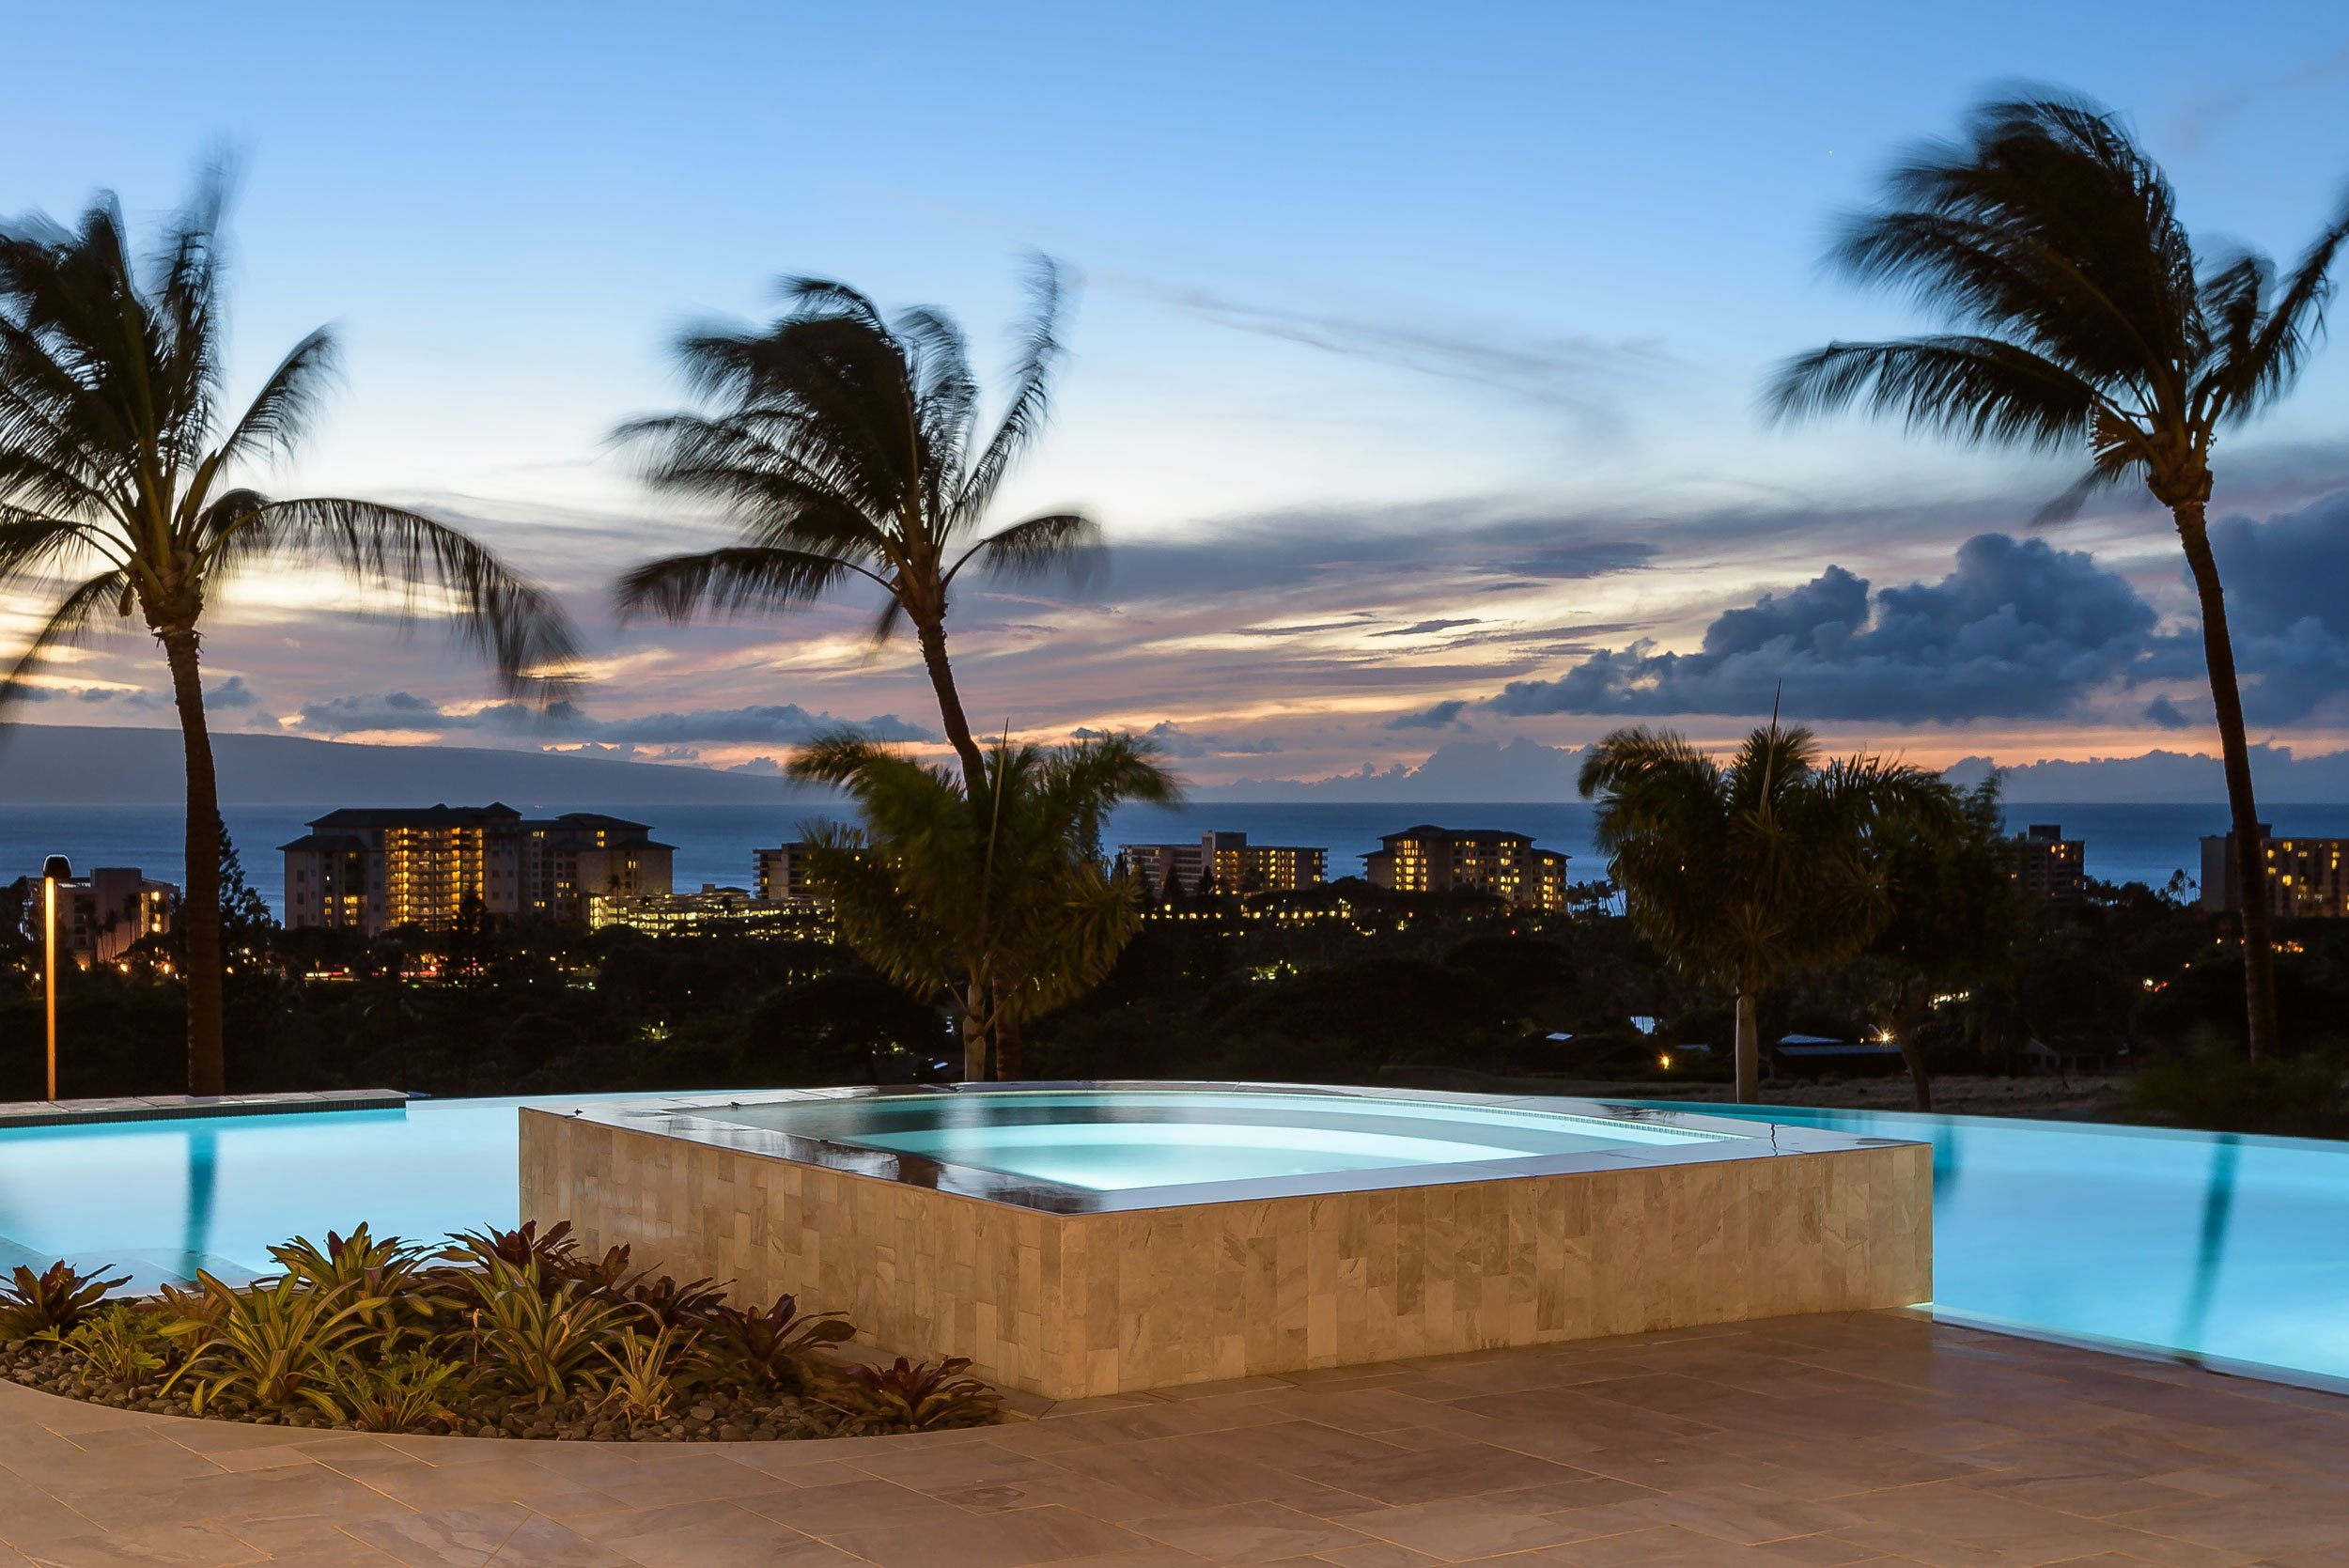 This brand-new custom-built home in Kaanapali Golf Estates has the total island resort package: a 1.5-mile stretch of pristine Pacific Ocean coastline and world-class golf courses.